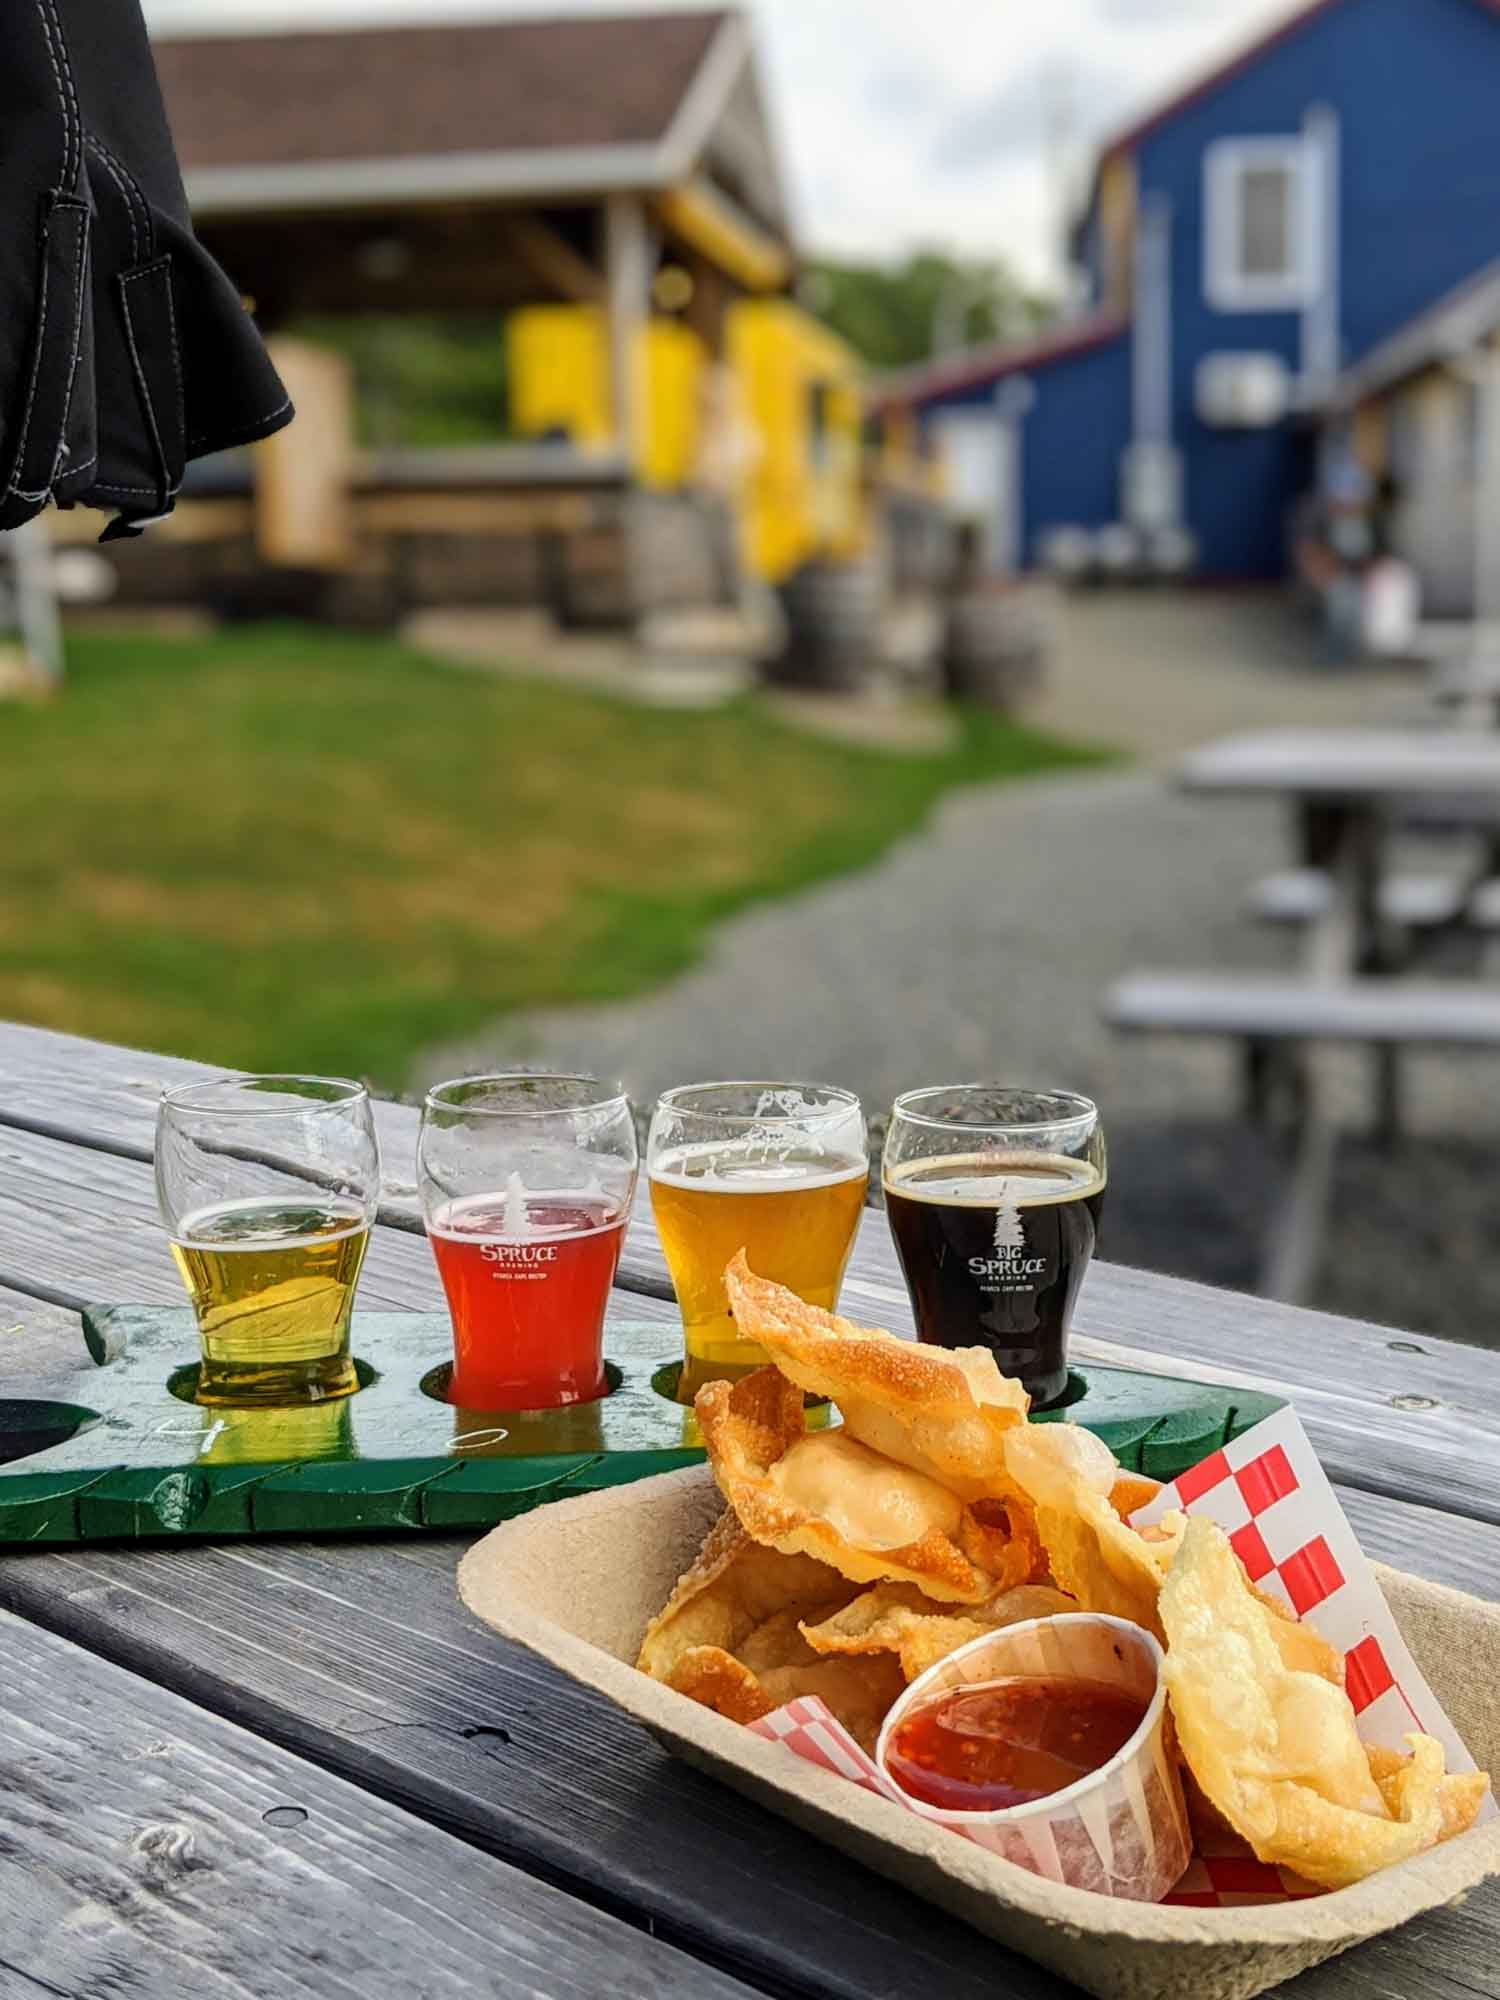 Big Spruce Brewing Company grounds with picnic tables. Flight of craft beer and lobster wontons